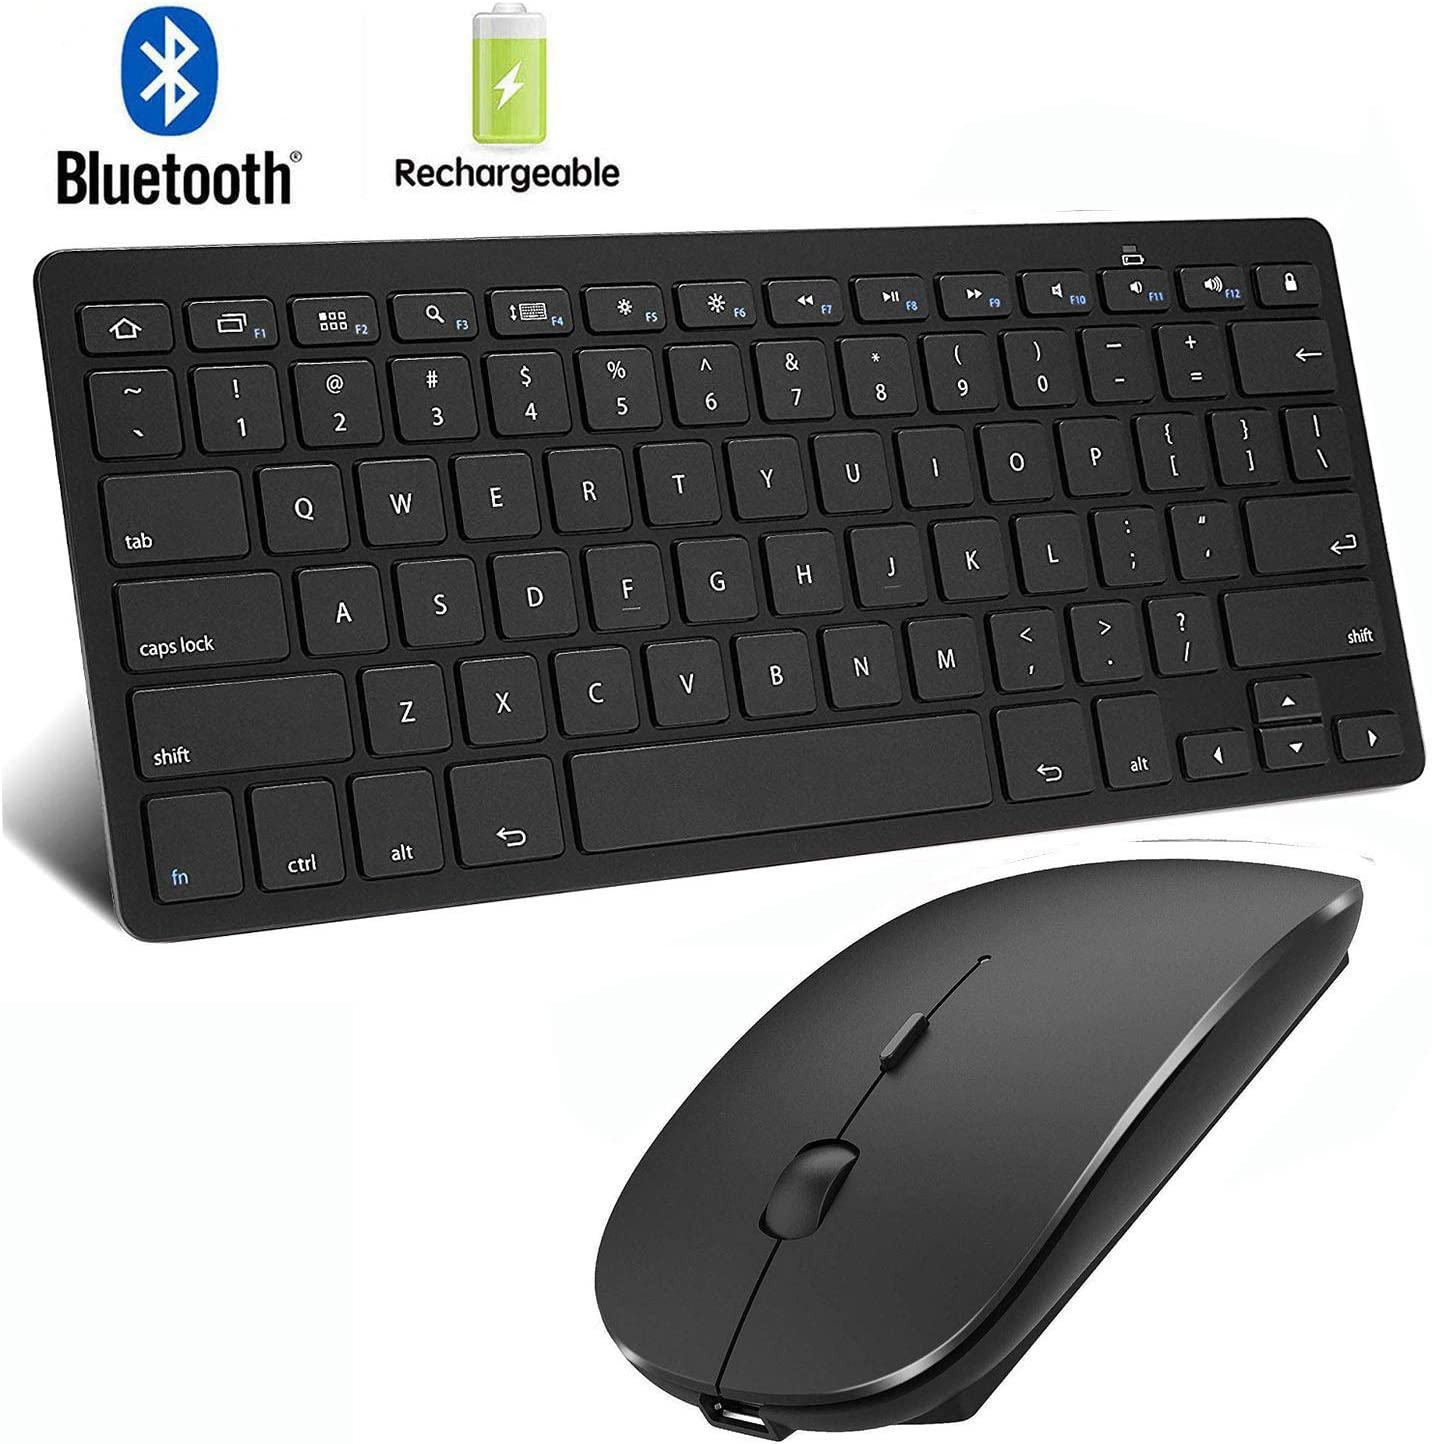 Amazon Com Bluetooth Keyboard And Mouse For Ipad And Iphone Bluetooth Keyboard Compatible With Ipad Ipad Pro Ipad Air Ipad Mini And Other Bluetooth Enabled Devices Ipados 13 Ios 13 And Above Black Computers